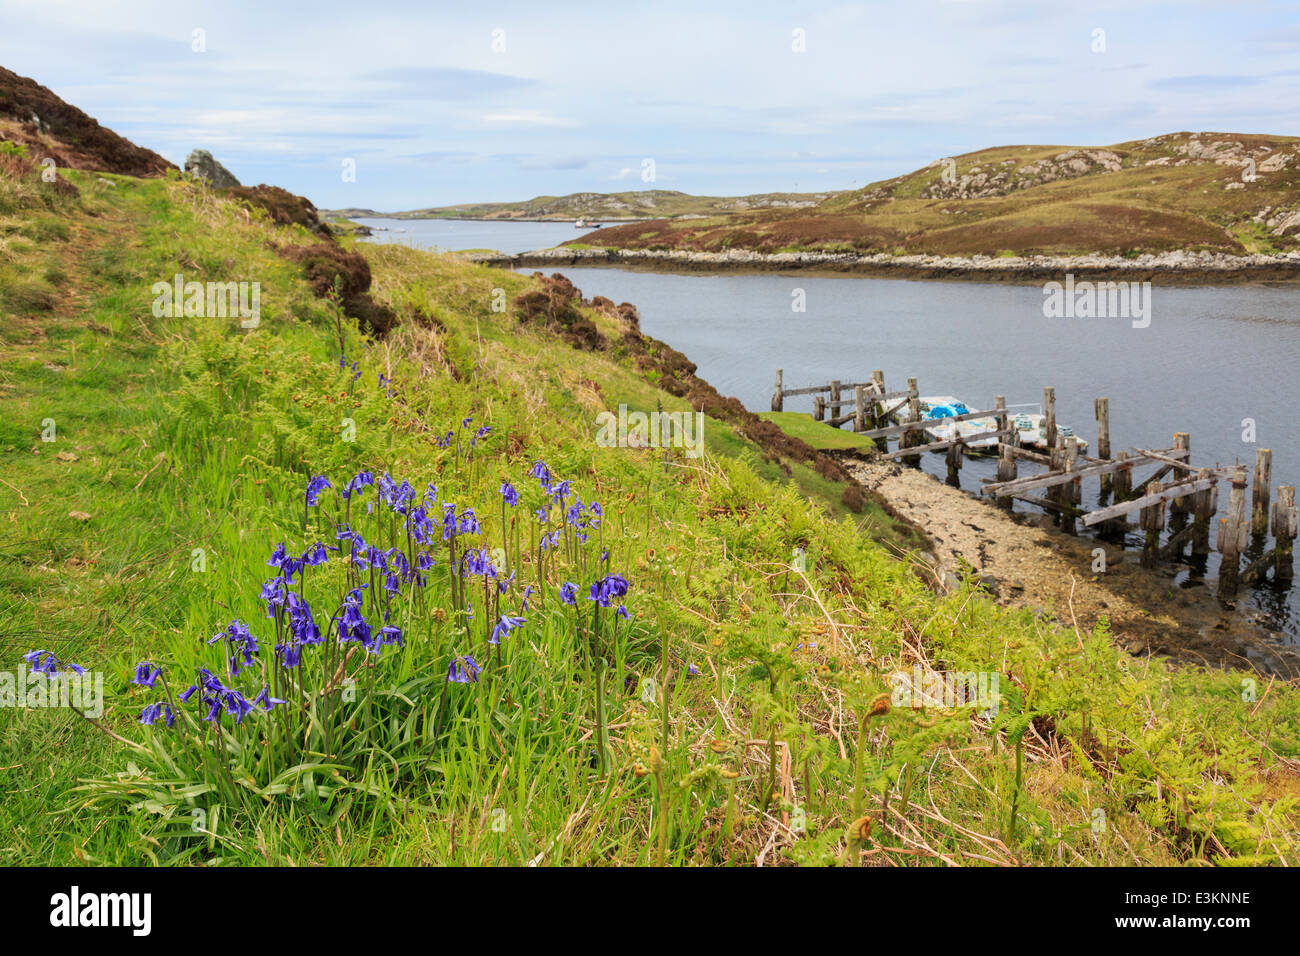 Coastal scene with Bluebells growing by Loch Sgioport, South Uist, Outer Hebrides, Western Isles, Scotland, UK, Stock Photo